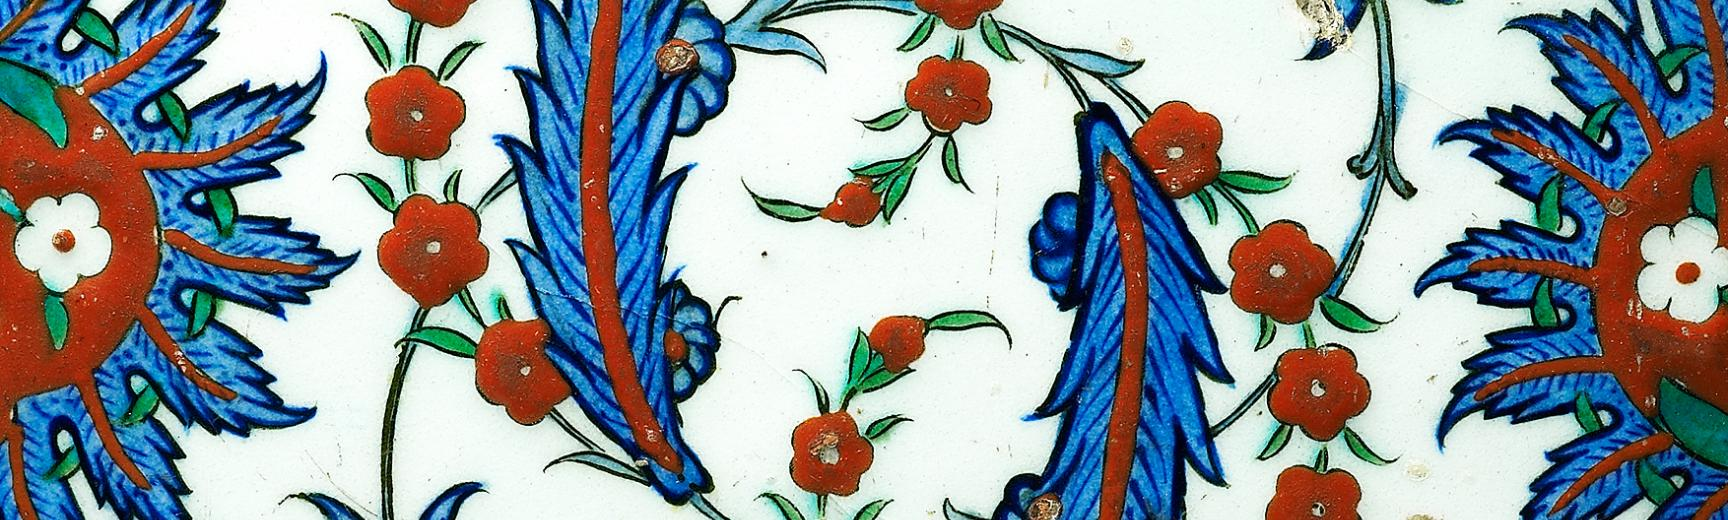 Tile with serrated leaves and flowers, 16th Century, Turkey